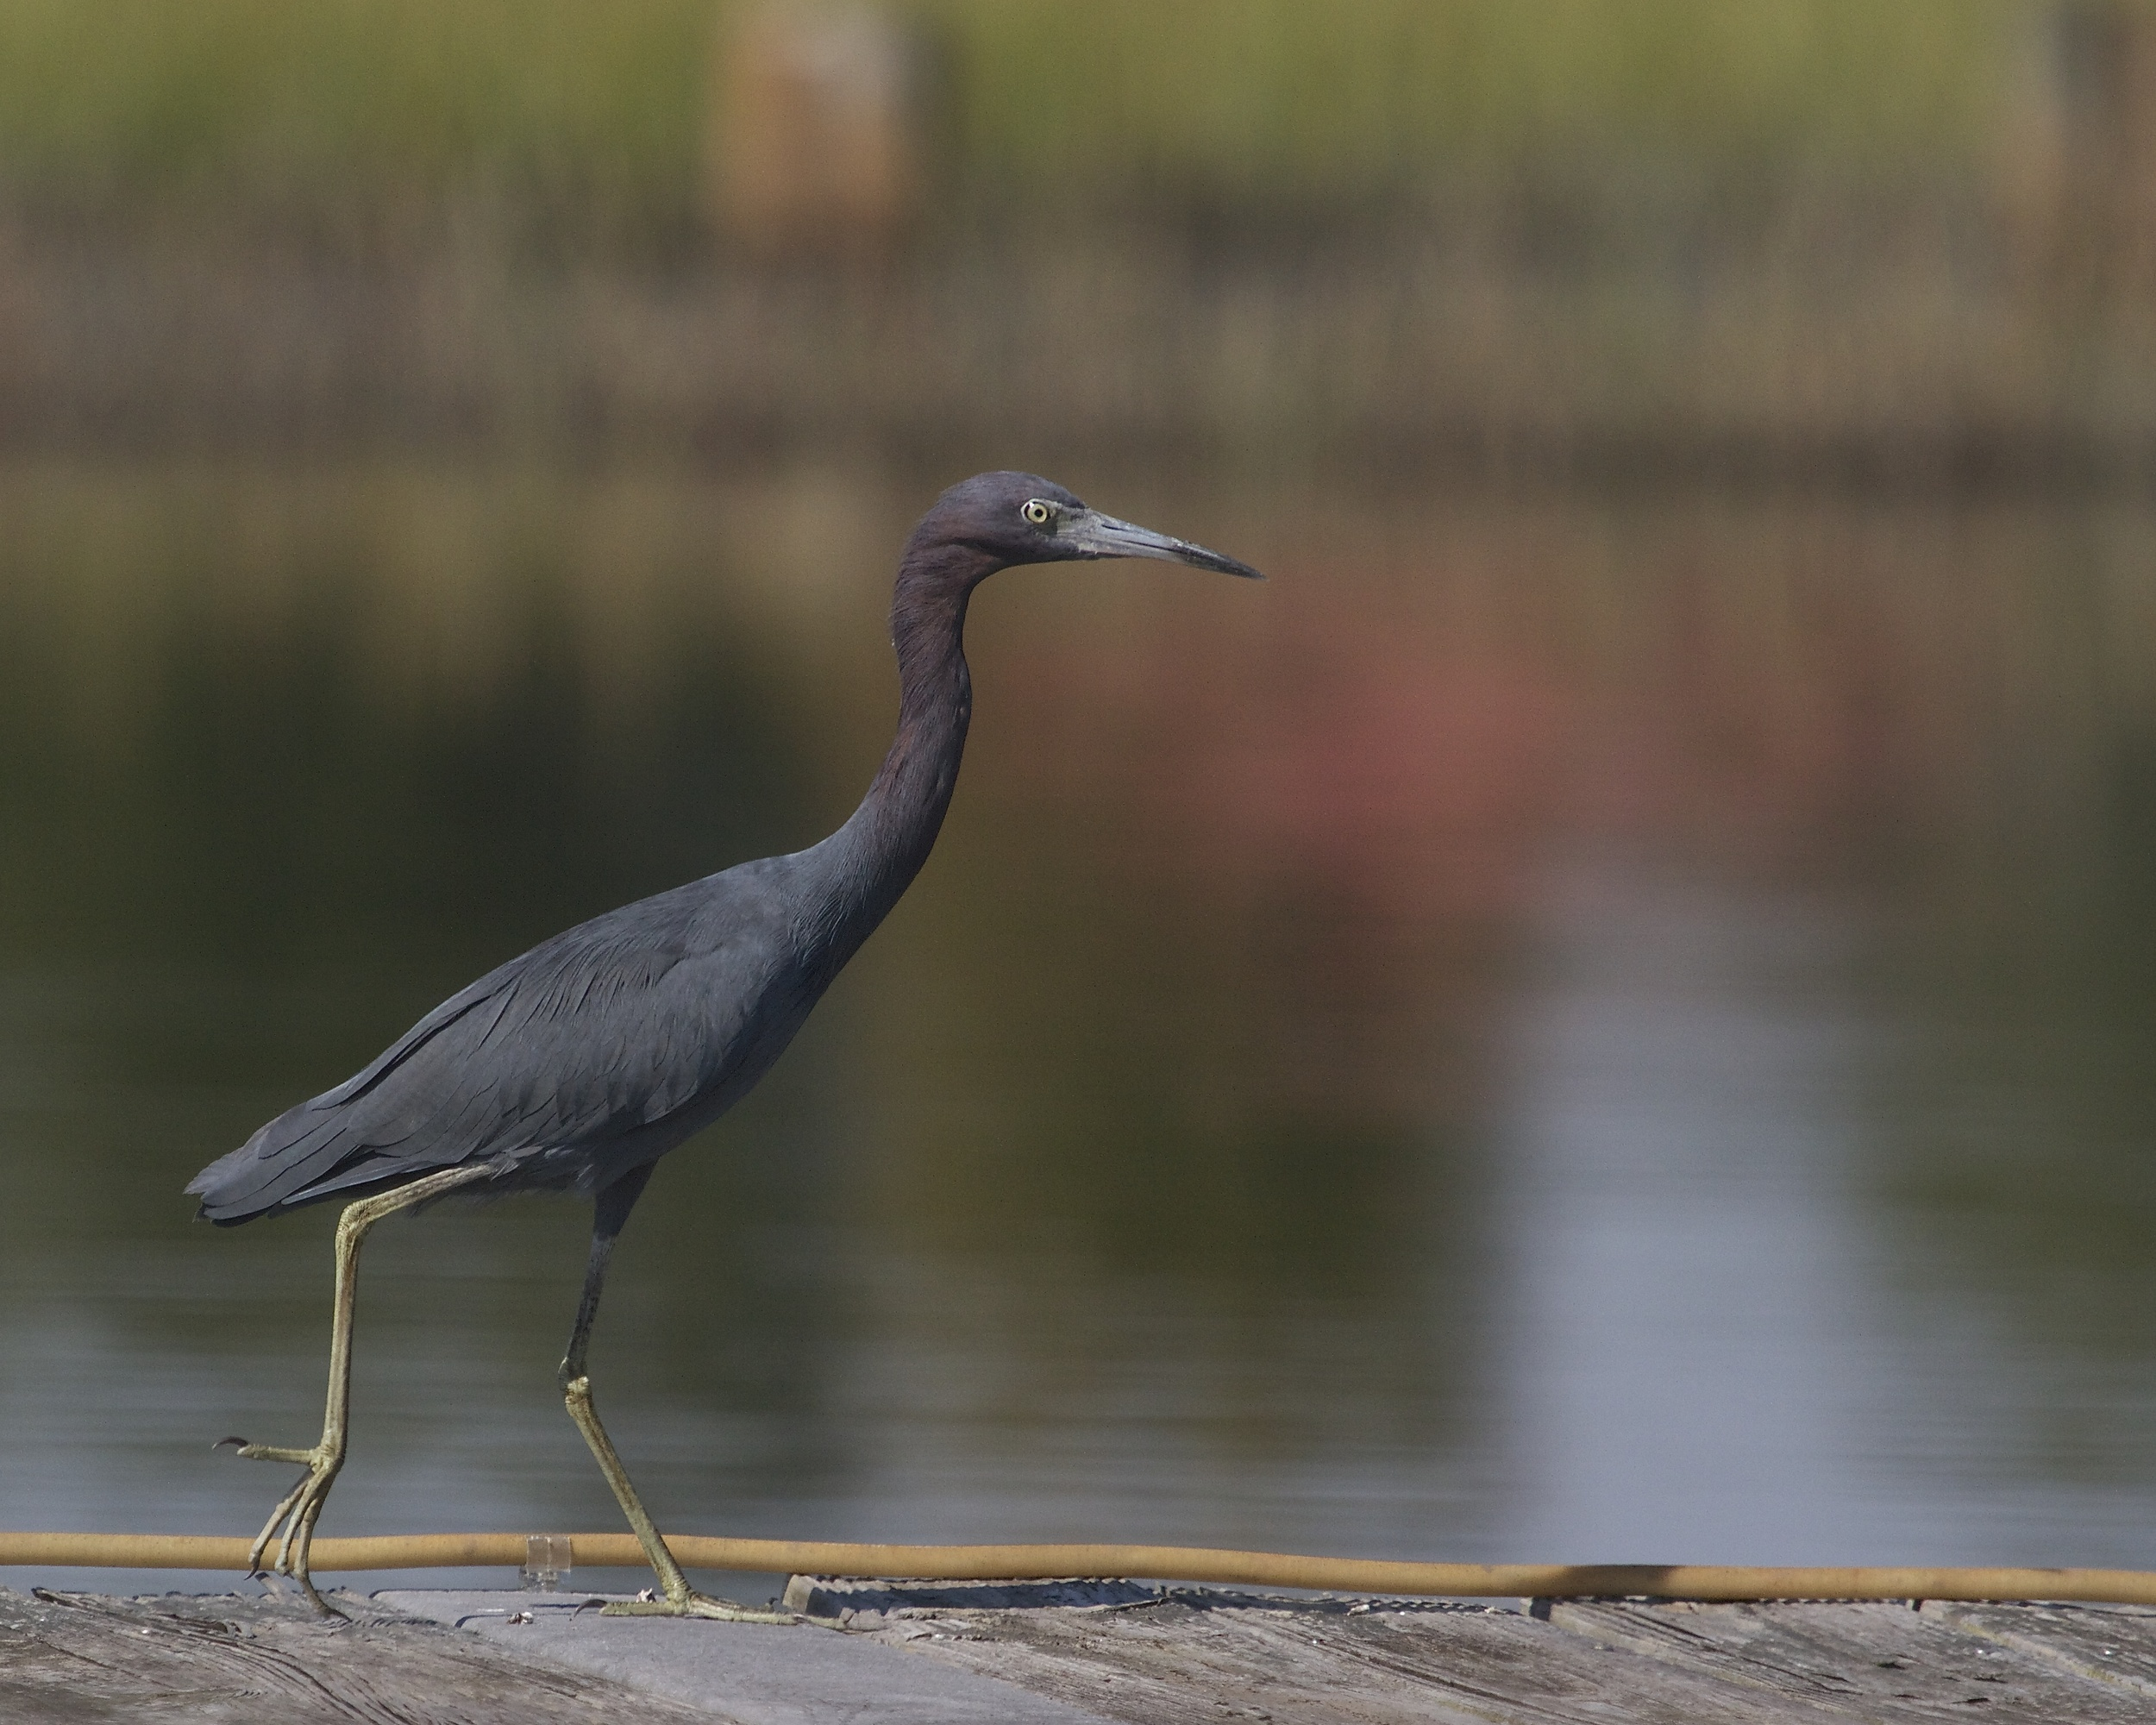 Little Blue Heron greets me on dock as I return.